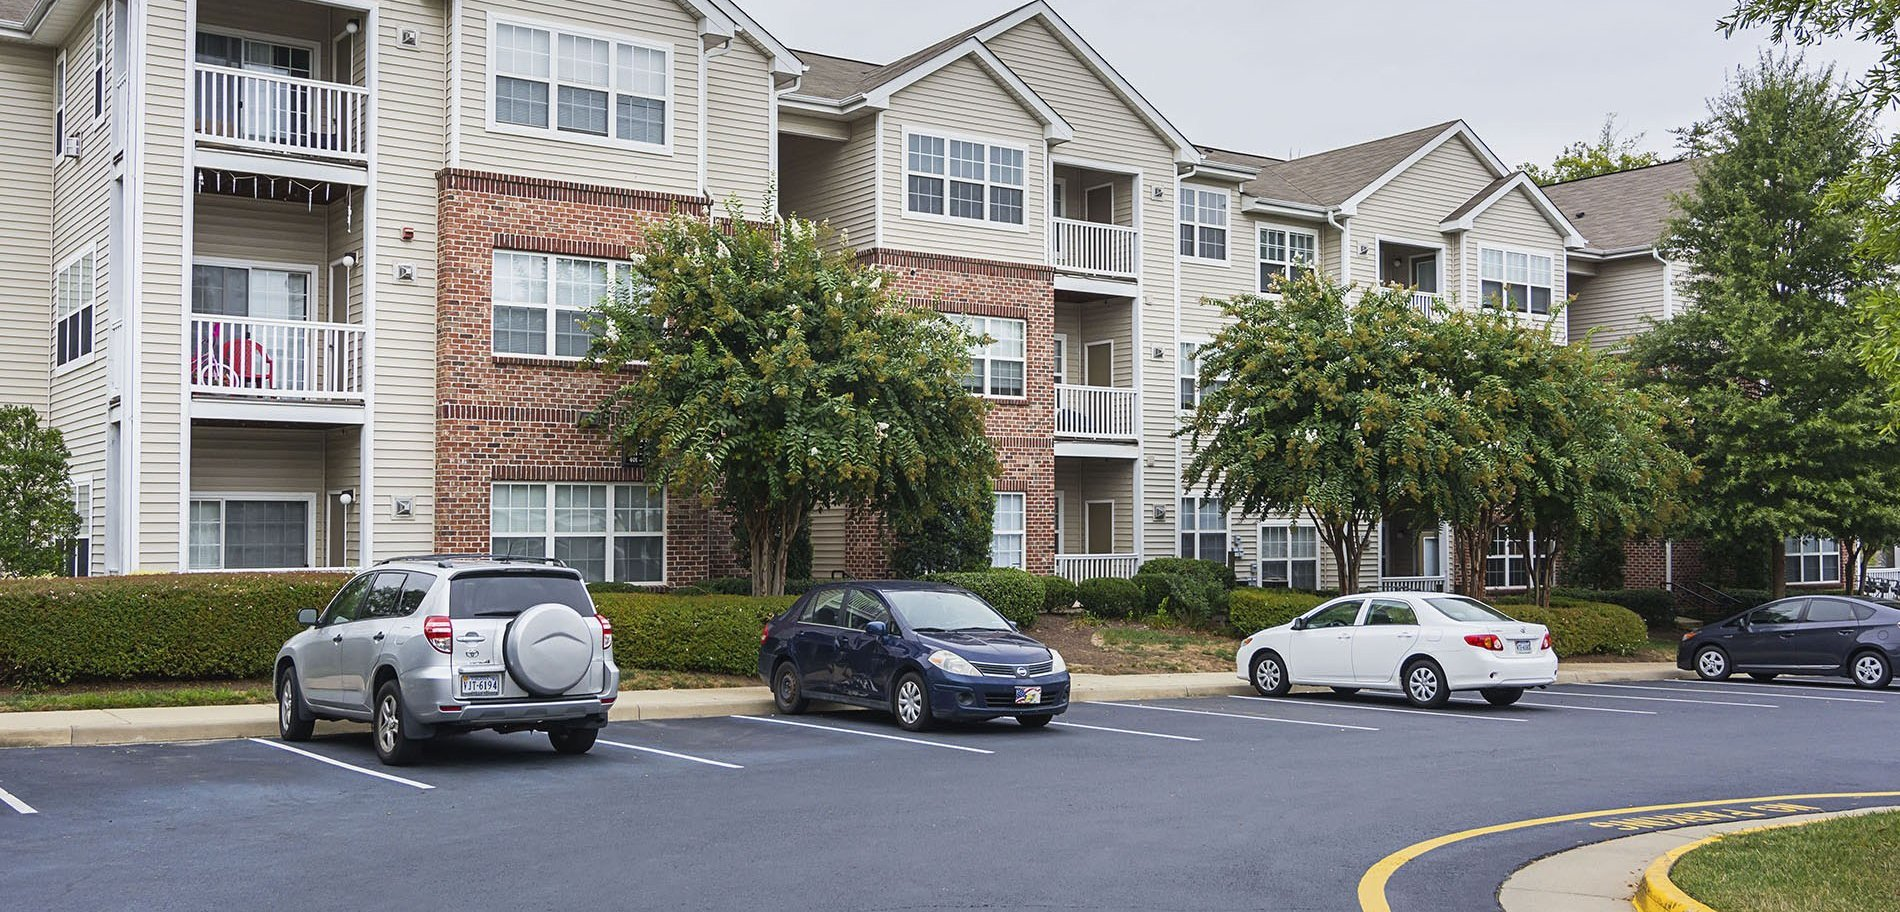 Best Courthouse Square Apartments For Rent In Stafford Va With Pictures